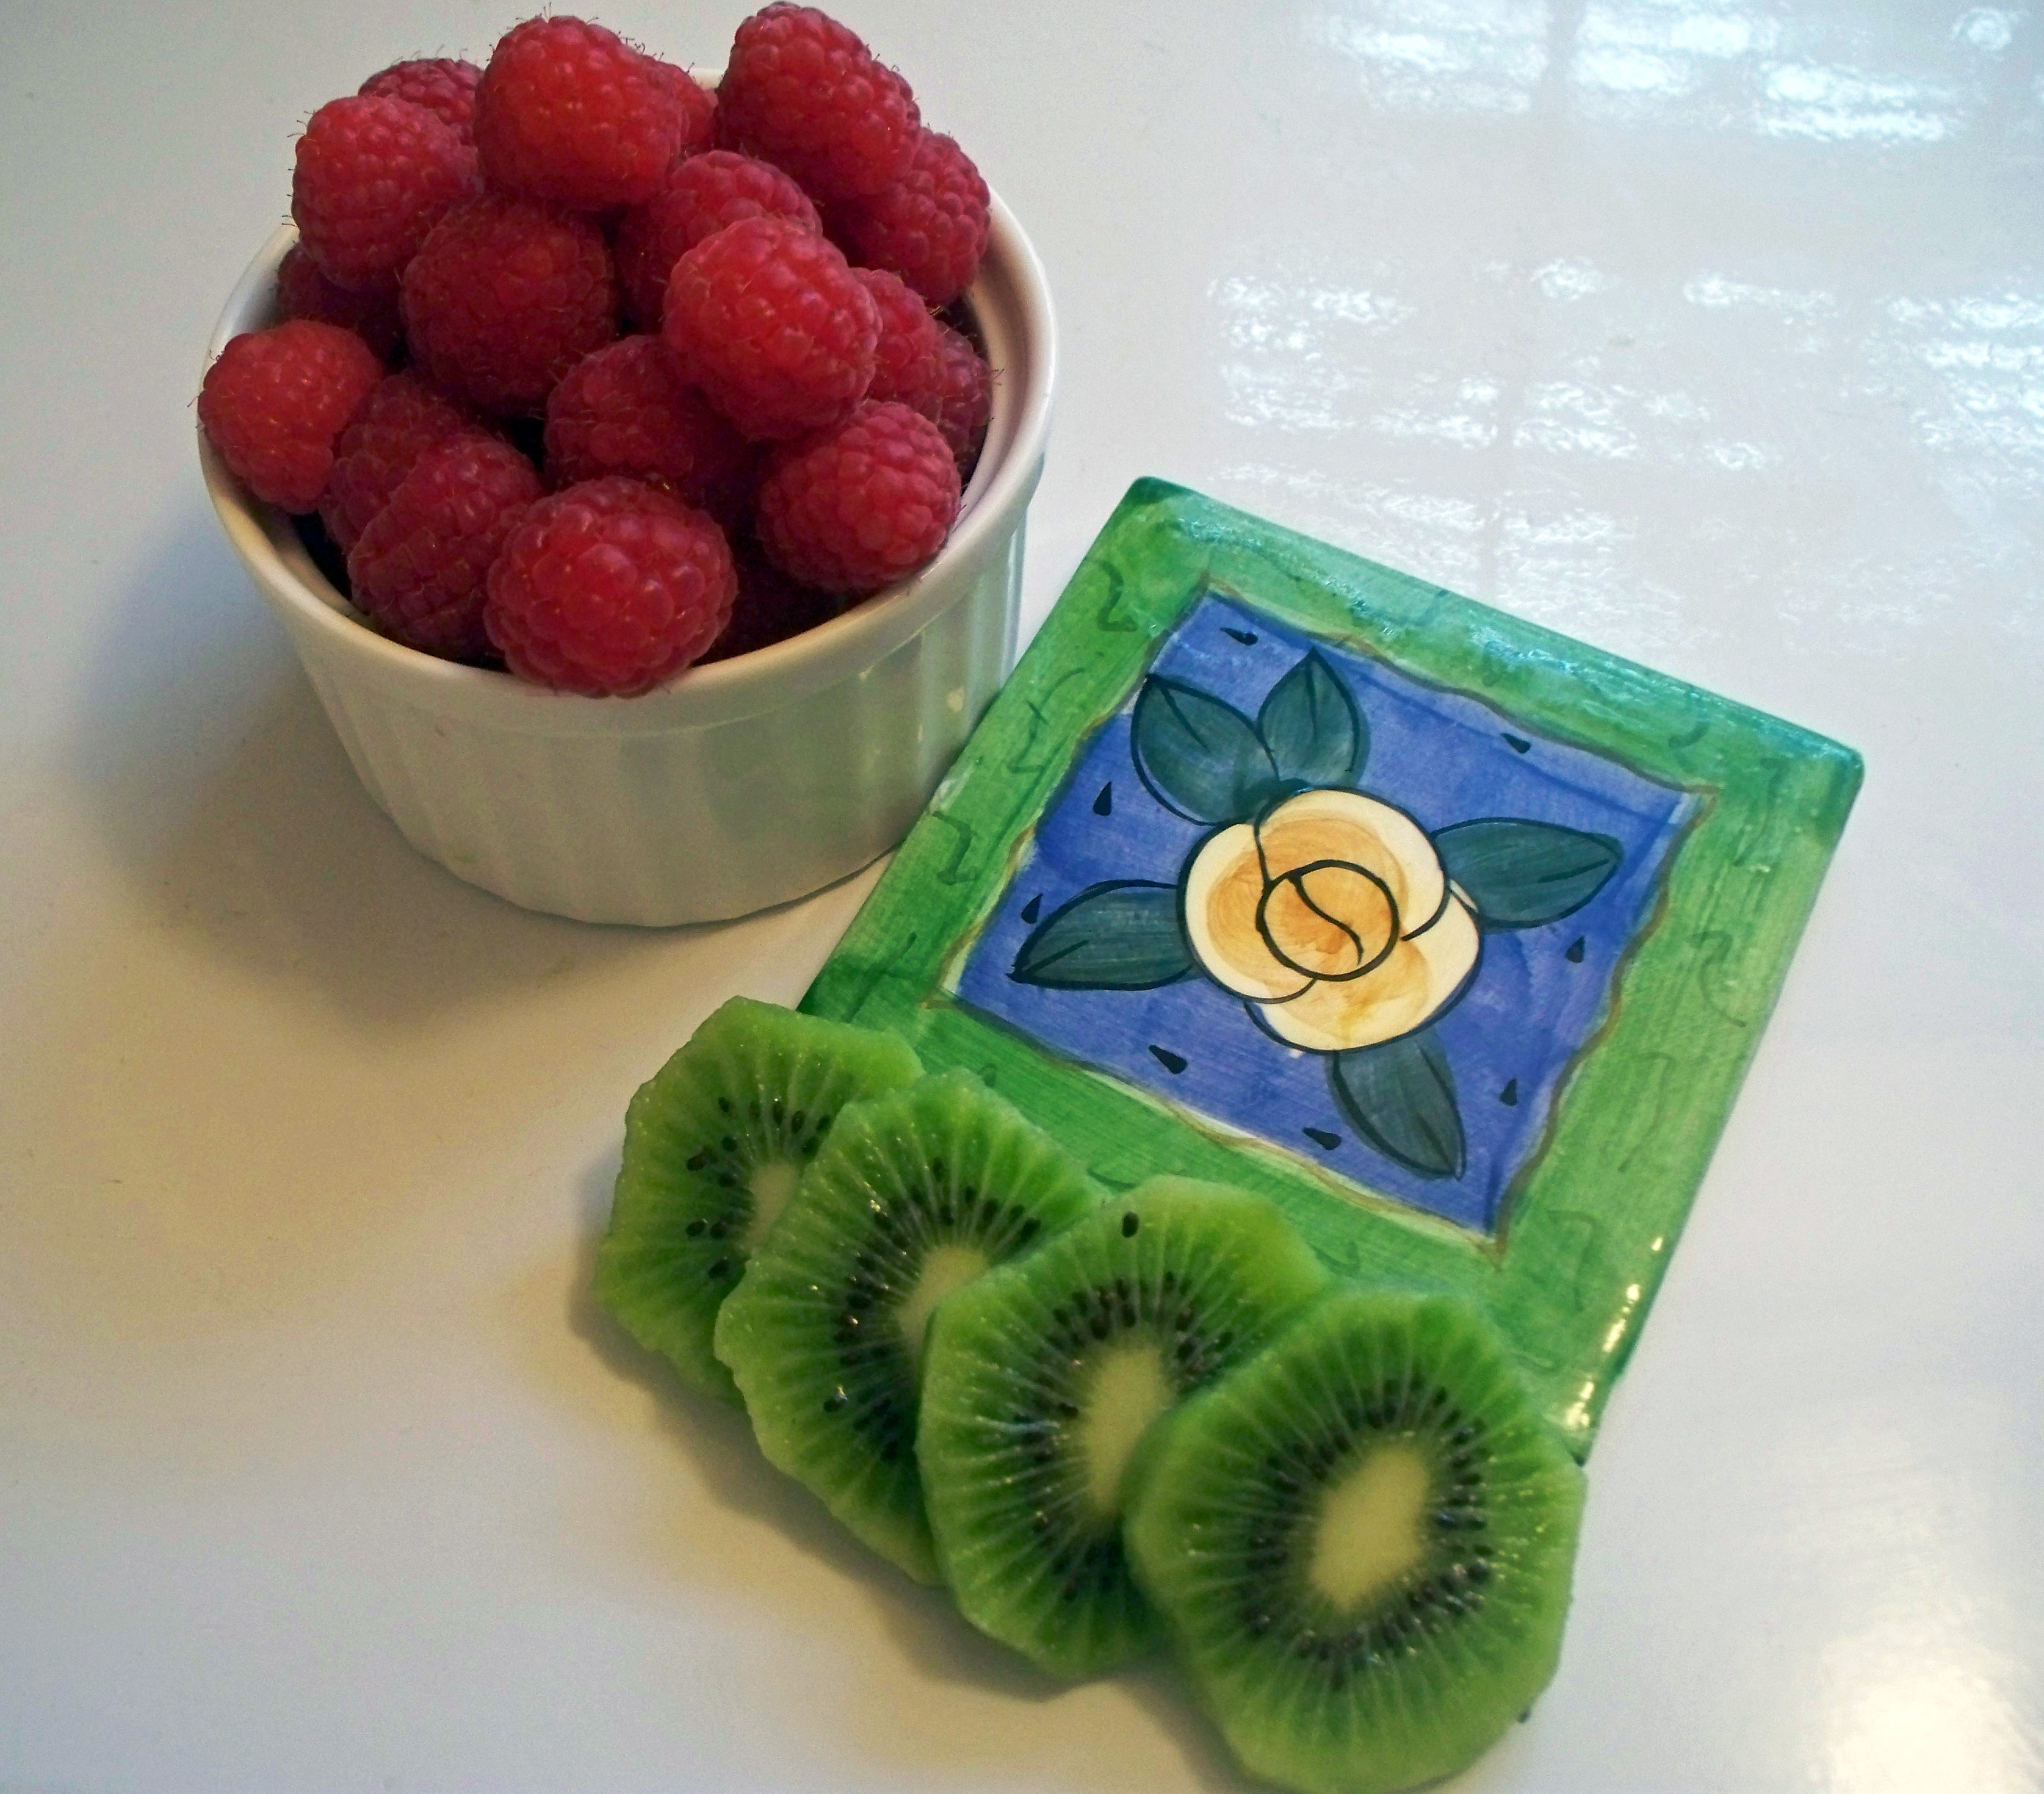 raspberries and kiwis